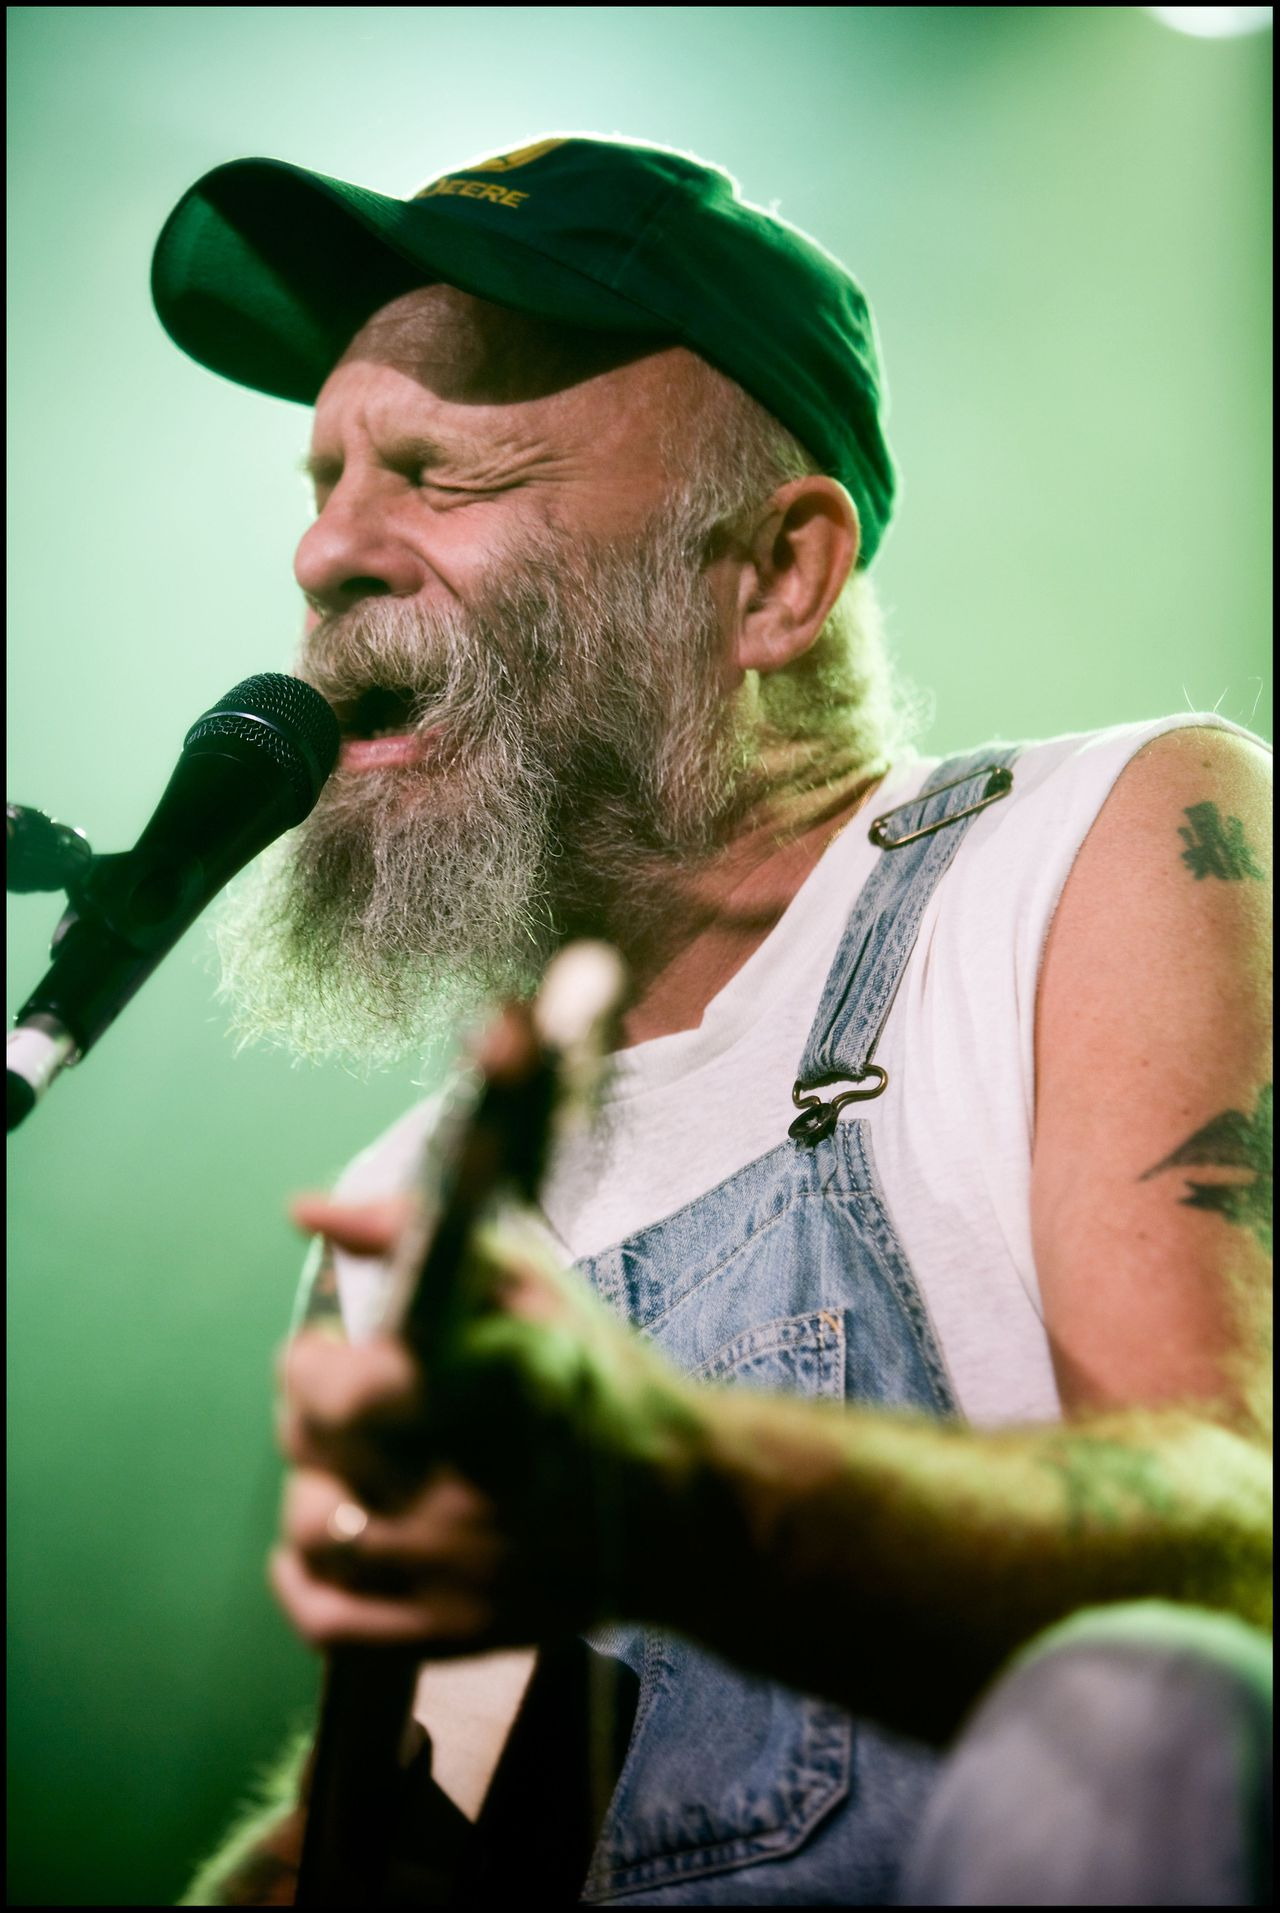 D 90905-04 Seasick Steve. Obligatory Credit - CAMERA PRESS / Neale Smith. American bluesman Seasick Steve playing at The Barras in Glasgow, Scotland. 21/10/2008.